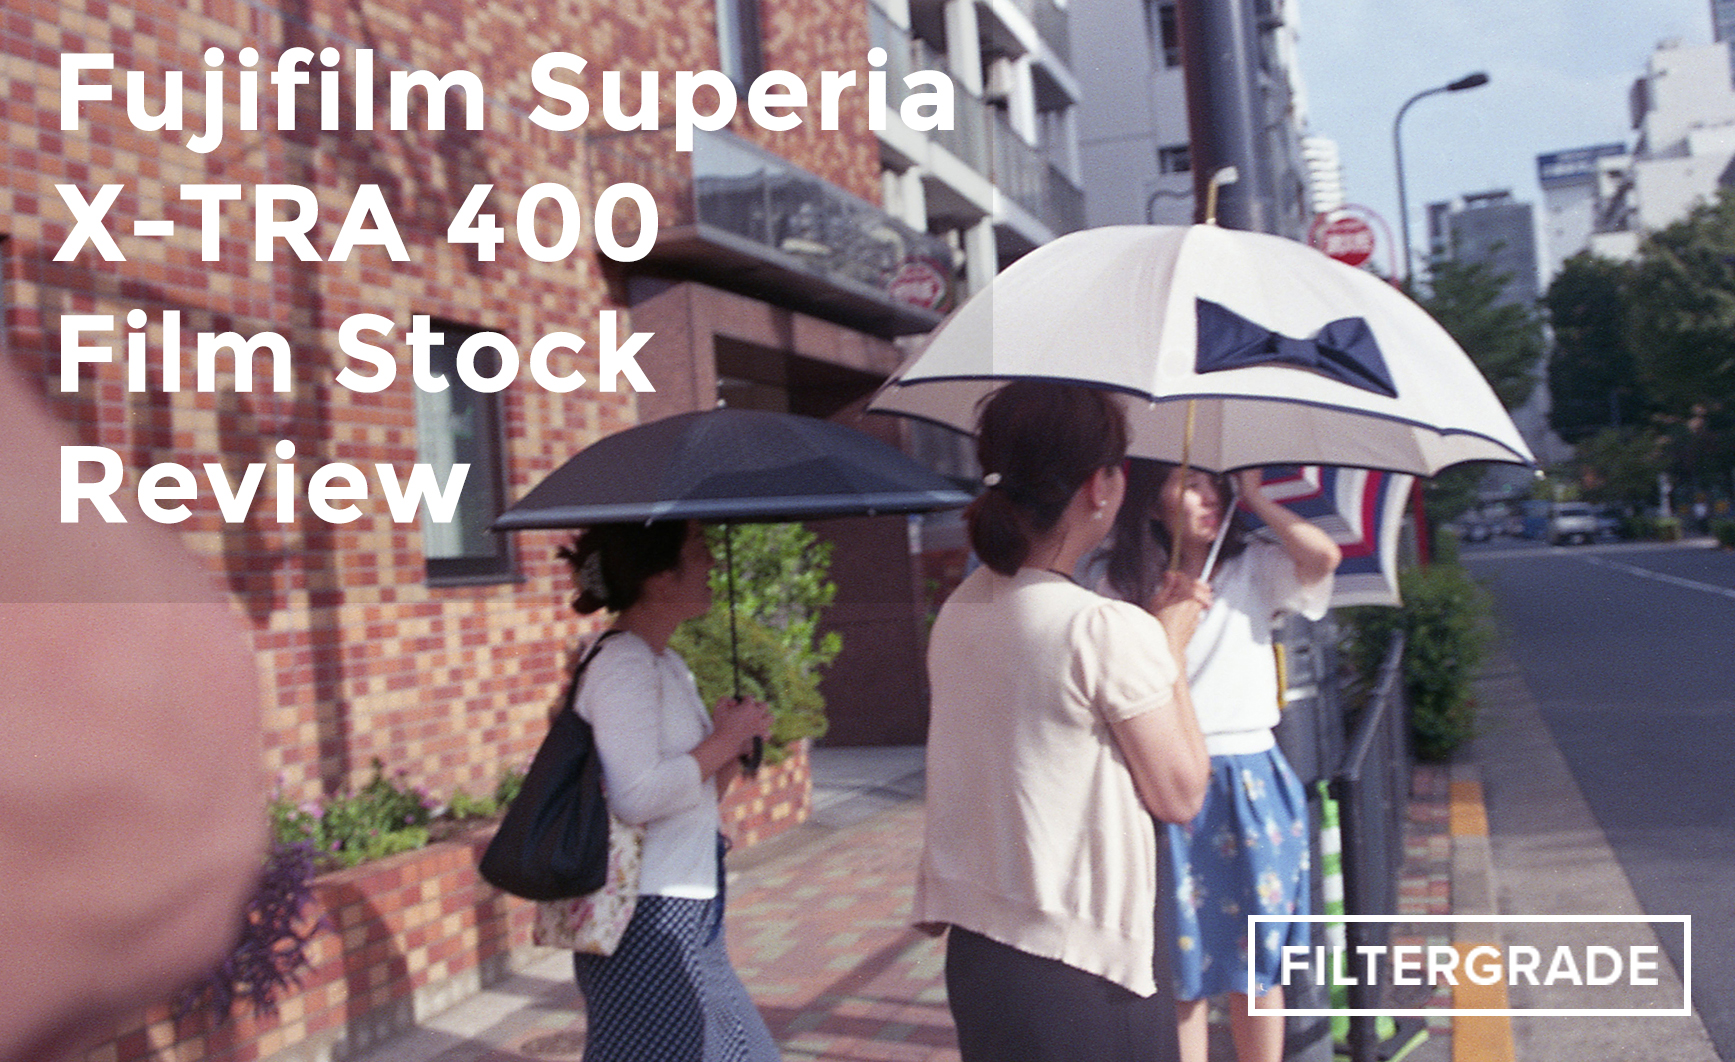 Fujifilm Superia X-TRA 400 Film Stock Review - FilterGrade